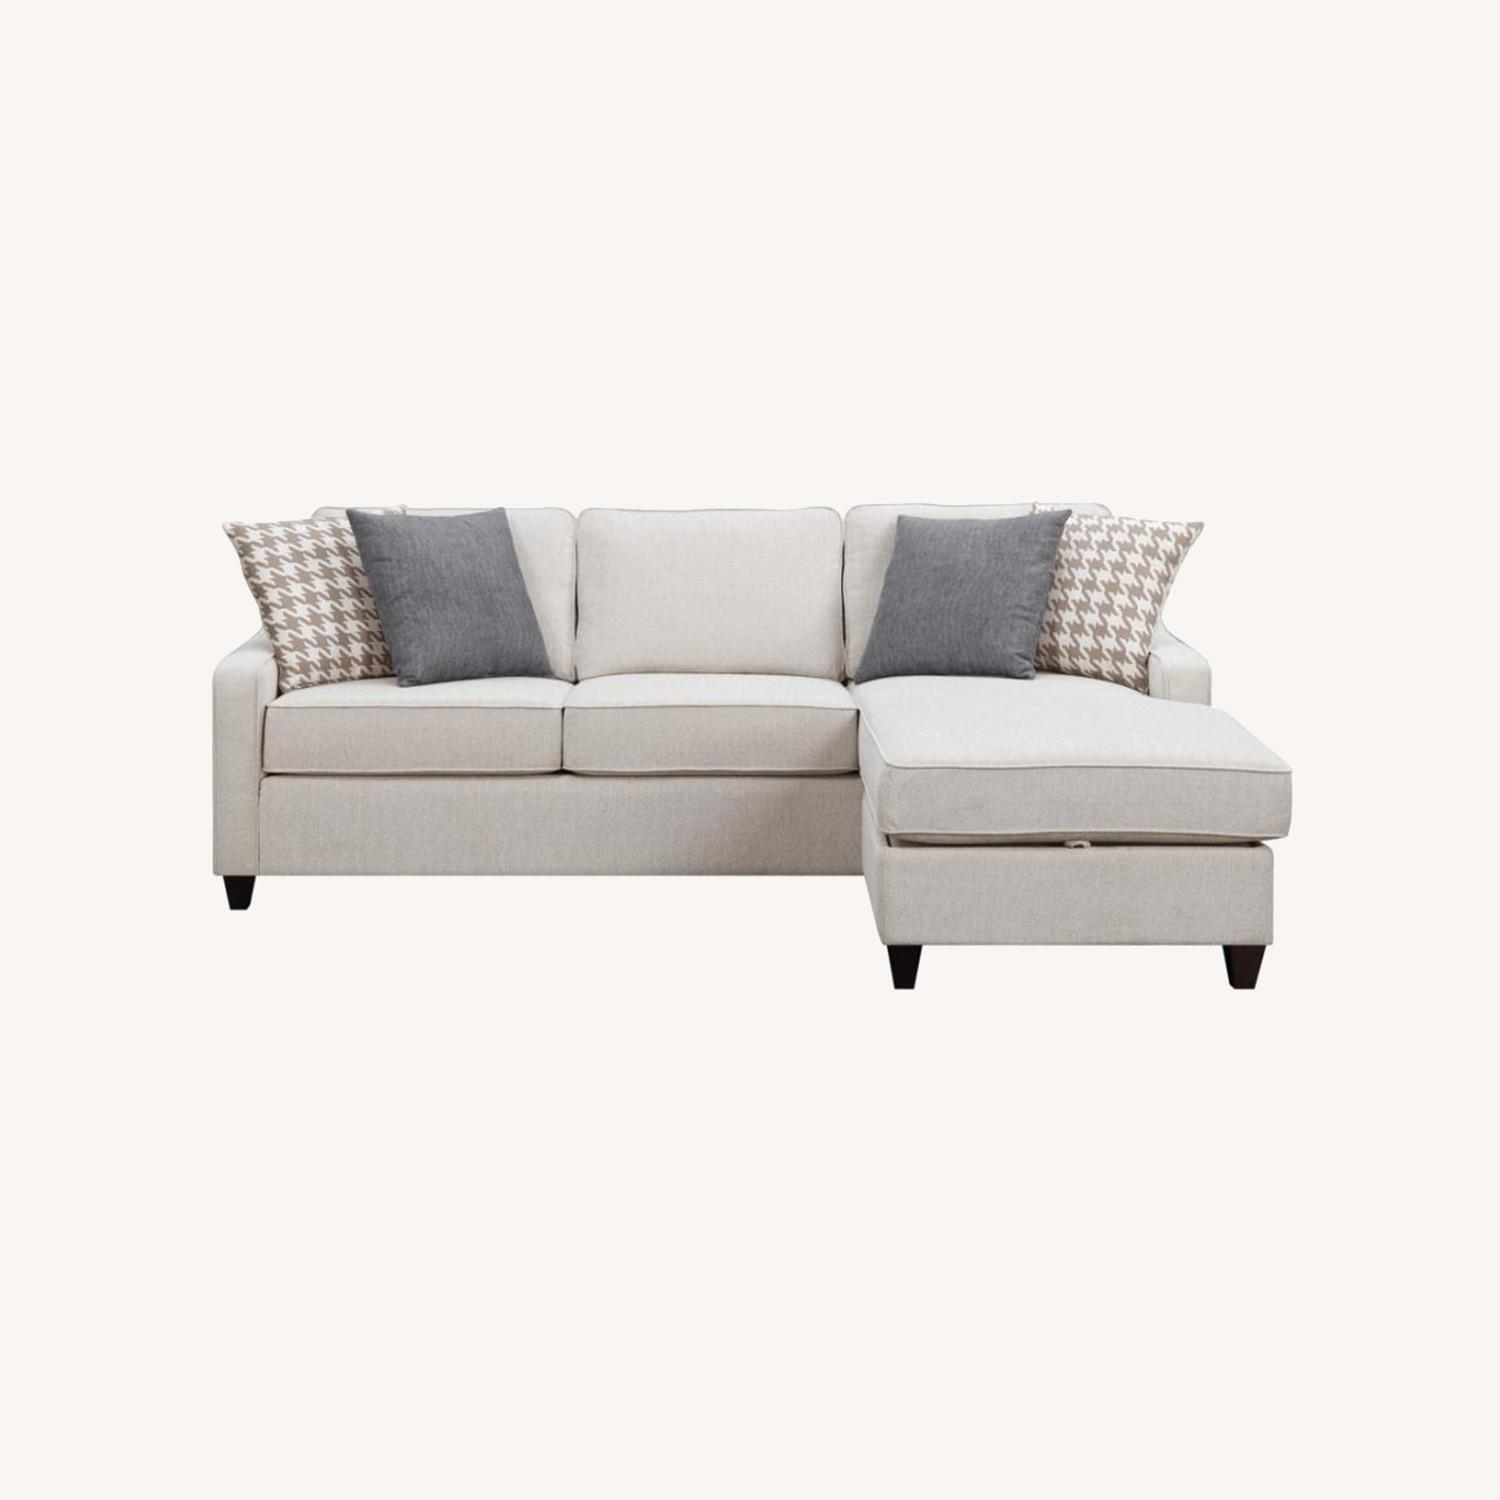 Sectional In Cream Chevron Dobby Upholstery - image-13